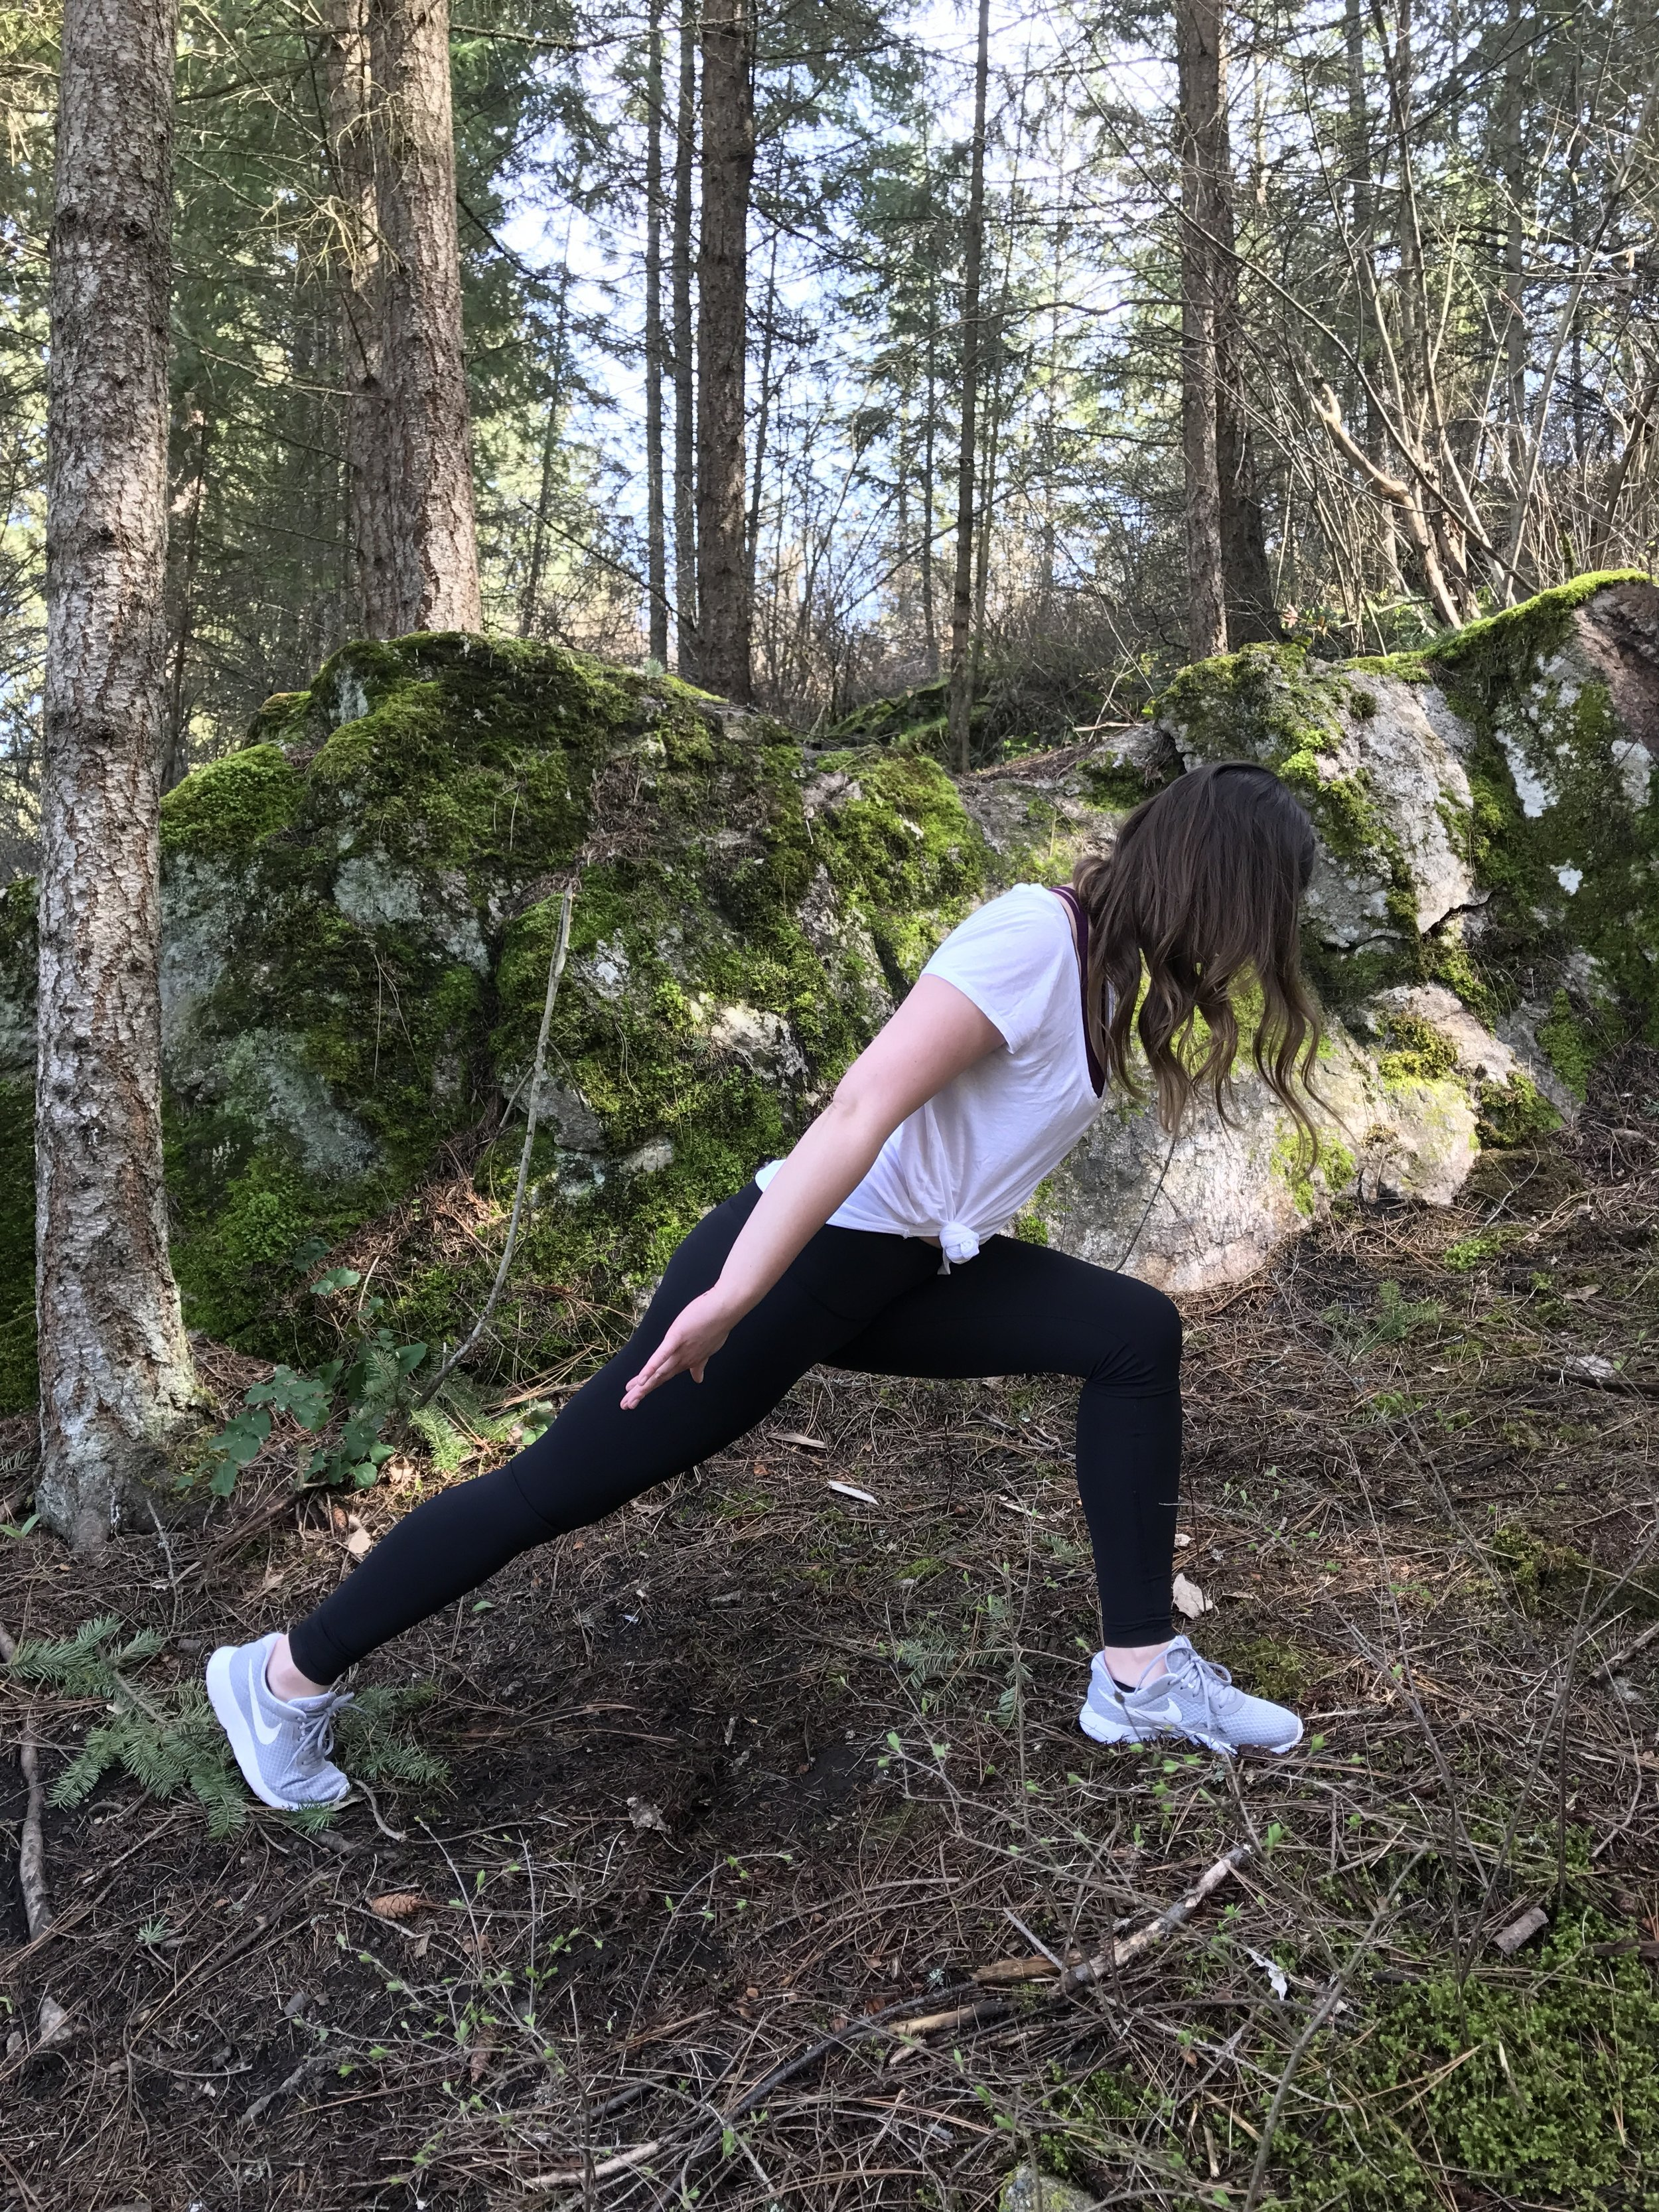 Slowly lift the upper body up, pressing the front foot firmly into the ground. Arm are back, palms facing up.